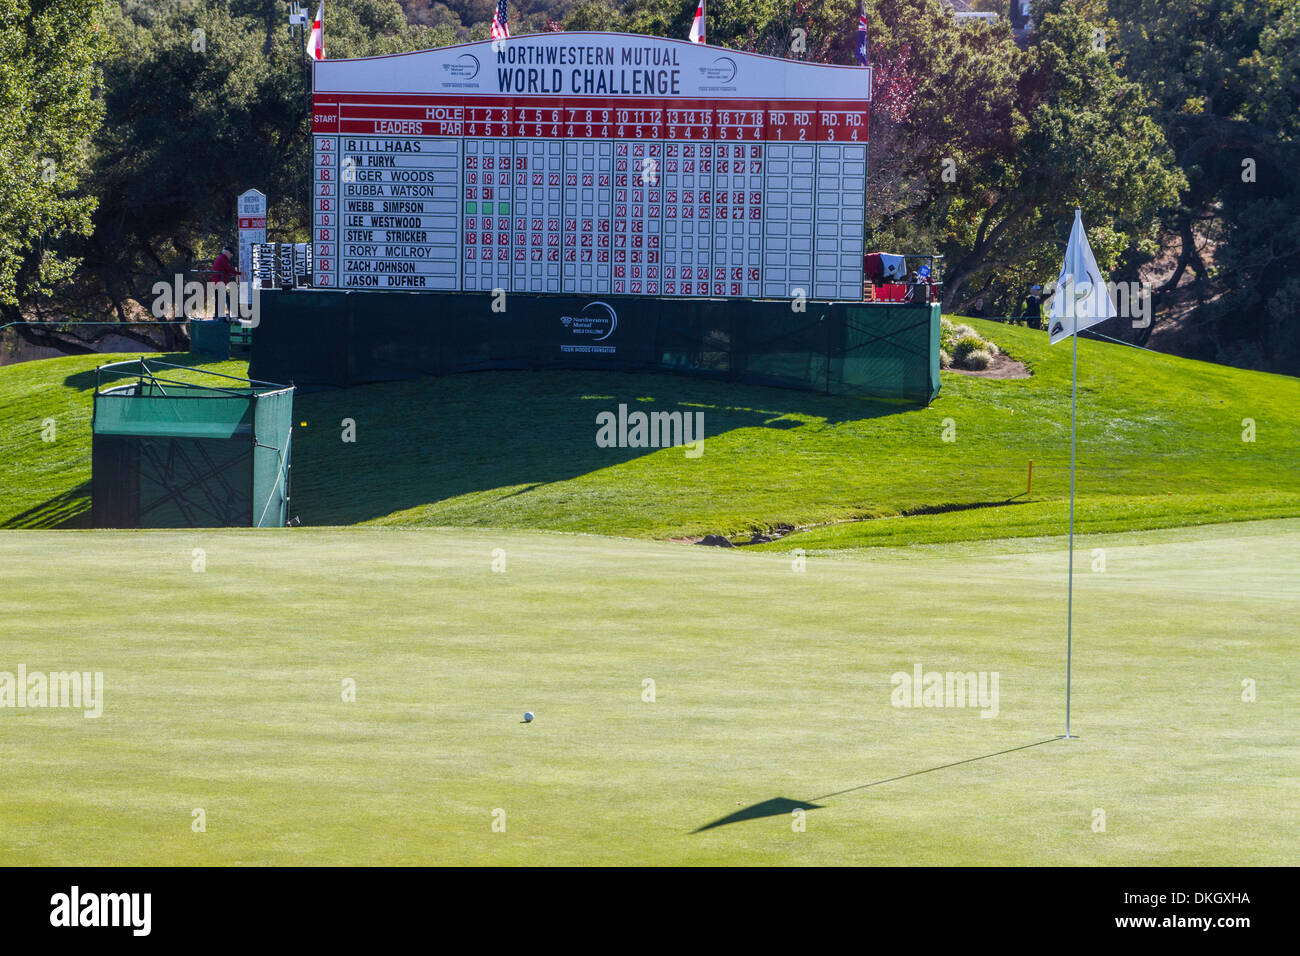 The 18th  Green at the 2013 Northwestern Mutual Challenge at Sherwood Country Club in Thousand Oaks California - Stock Image